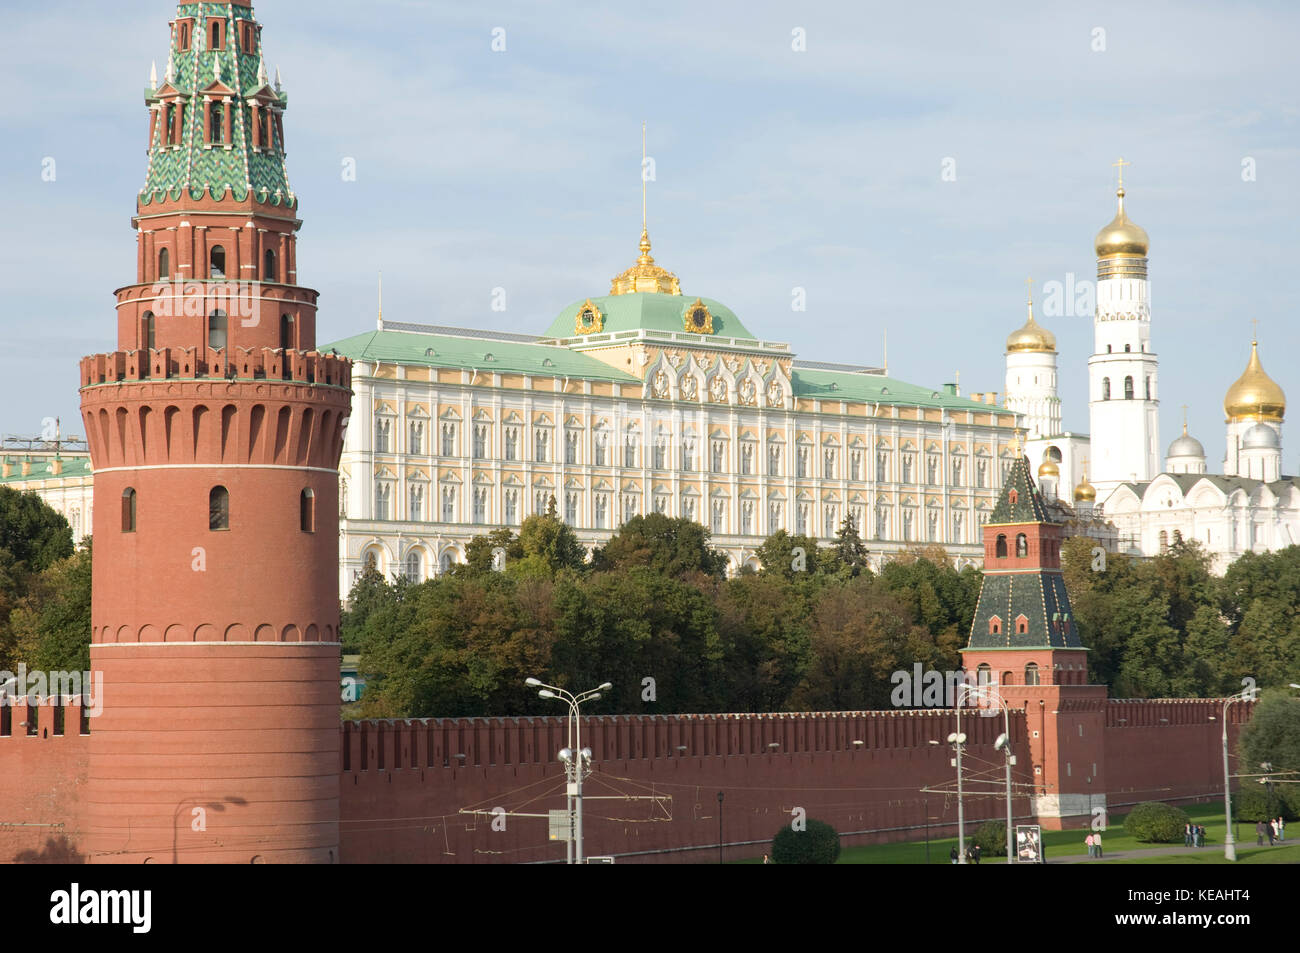 The Kremlin in Moscow, Russia - Stock Image